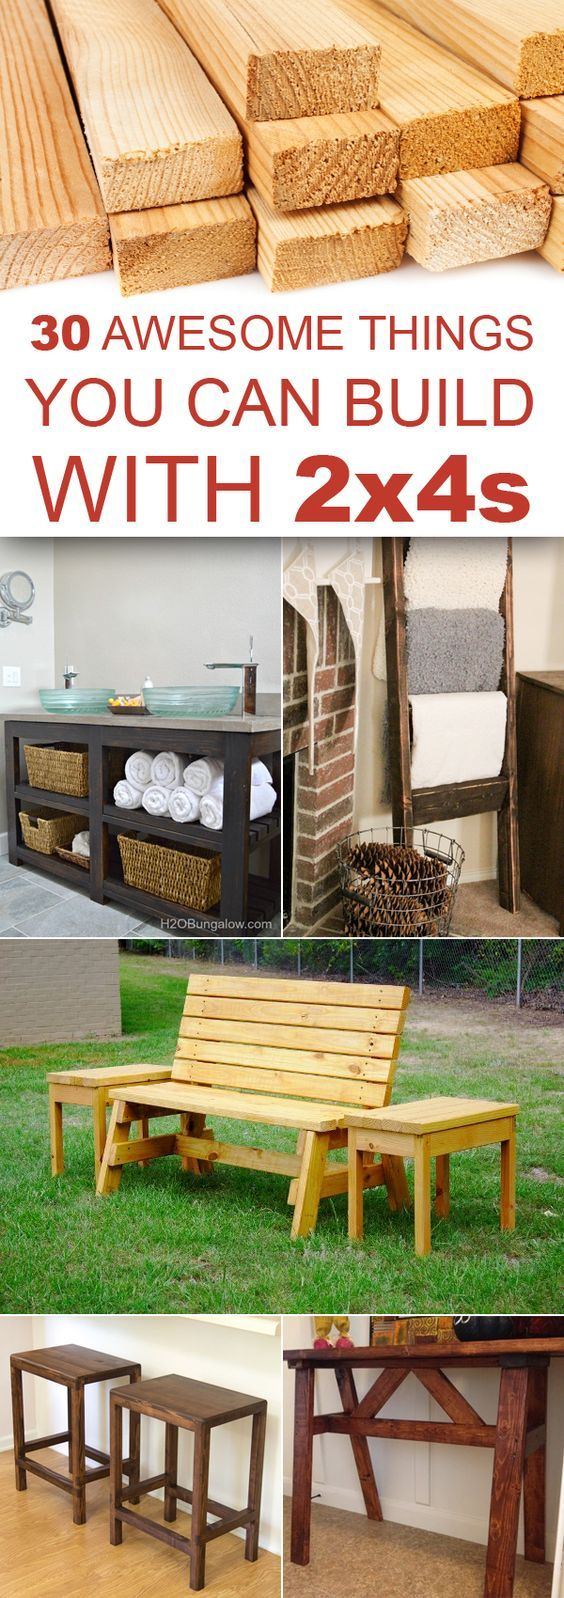 ... Wood Projects on Pinterest | Wood projects, Diy wood and Reclaimed